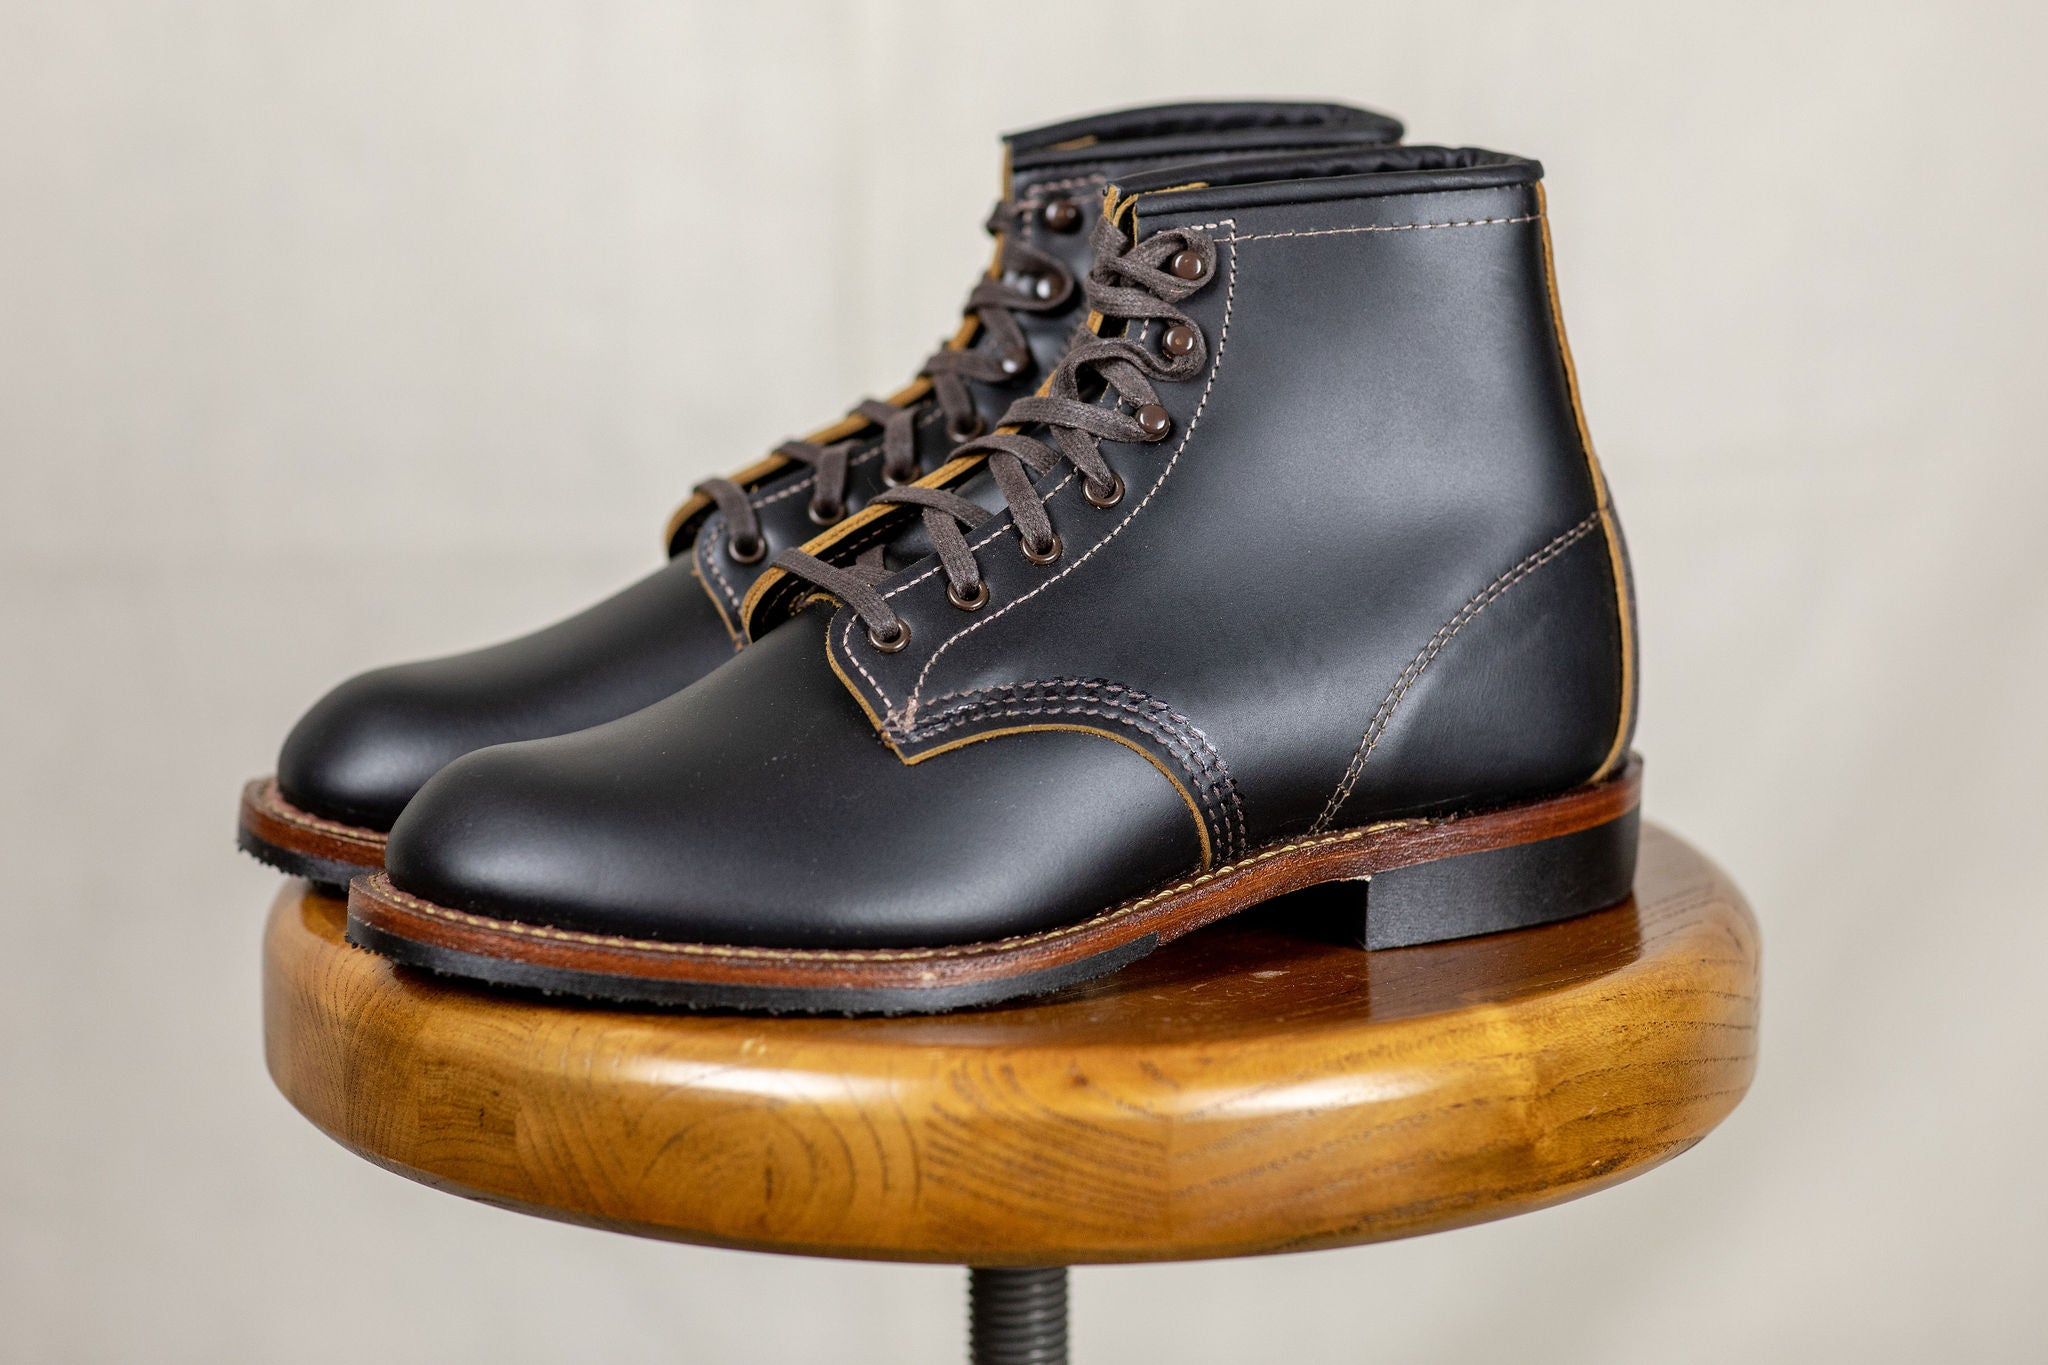 ccf7a8f84617e Red Wing Heritage 9060 Flat Toe Beckman Boot - Black Klondike